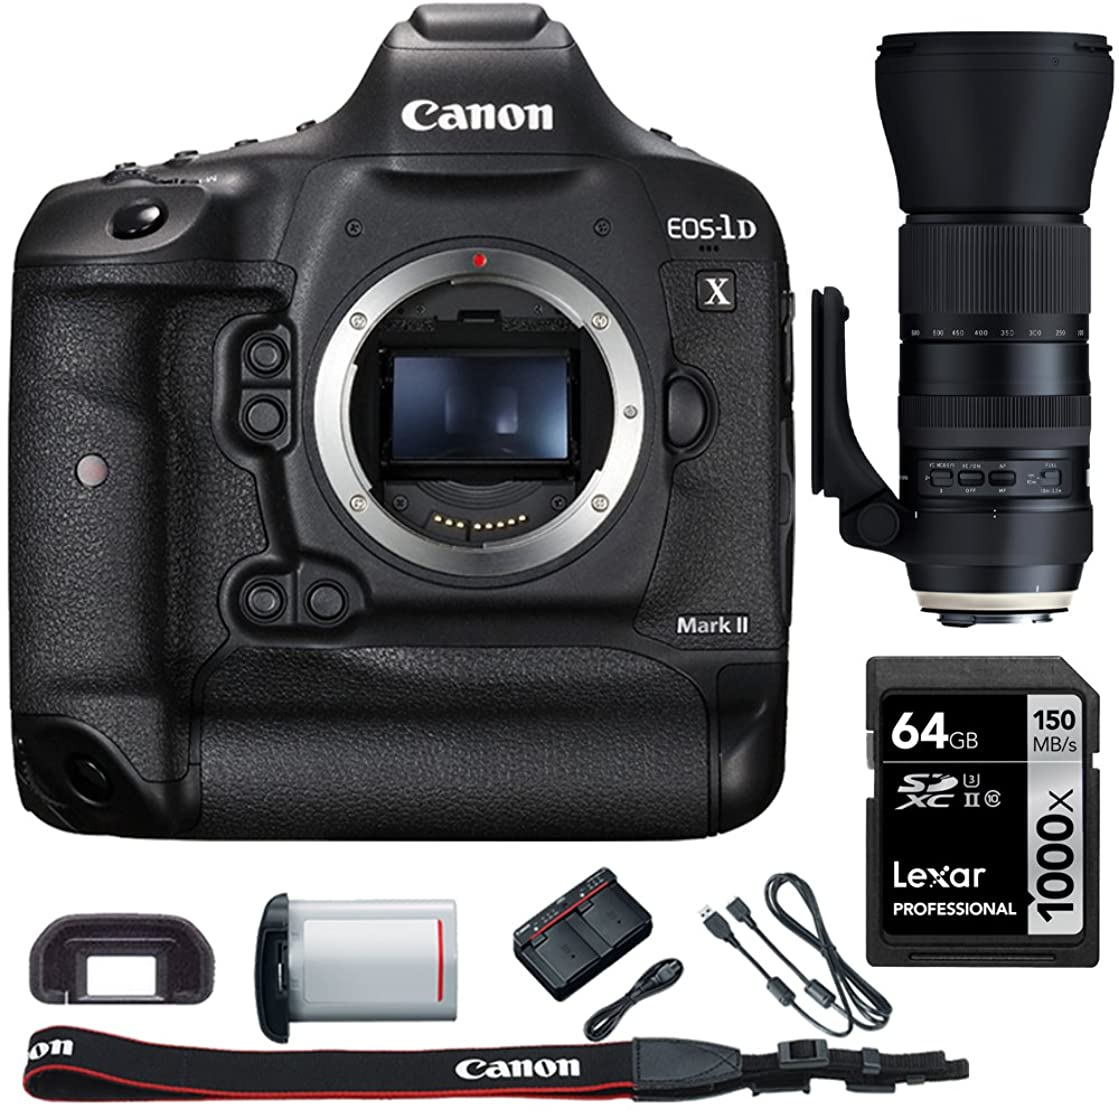 Canon EOS-1D X Mark II Digital SLR Camera Body with Bundle Includes, Tamron SP 150-600mm F/5-6.3 Di VC USD G2 Zoom Lens for Canon Mounts + Lexar 64GB 1000x SDHC/SDXC Class 10 Memory Card